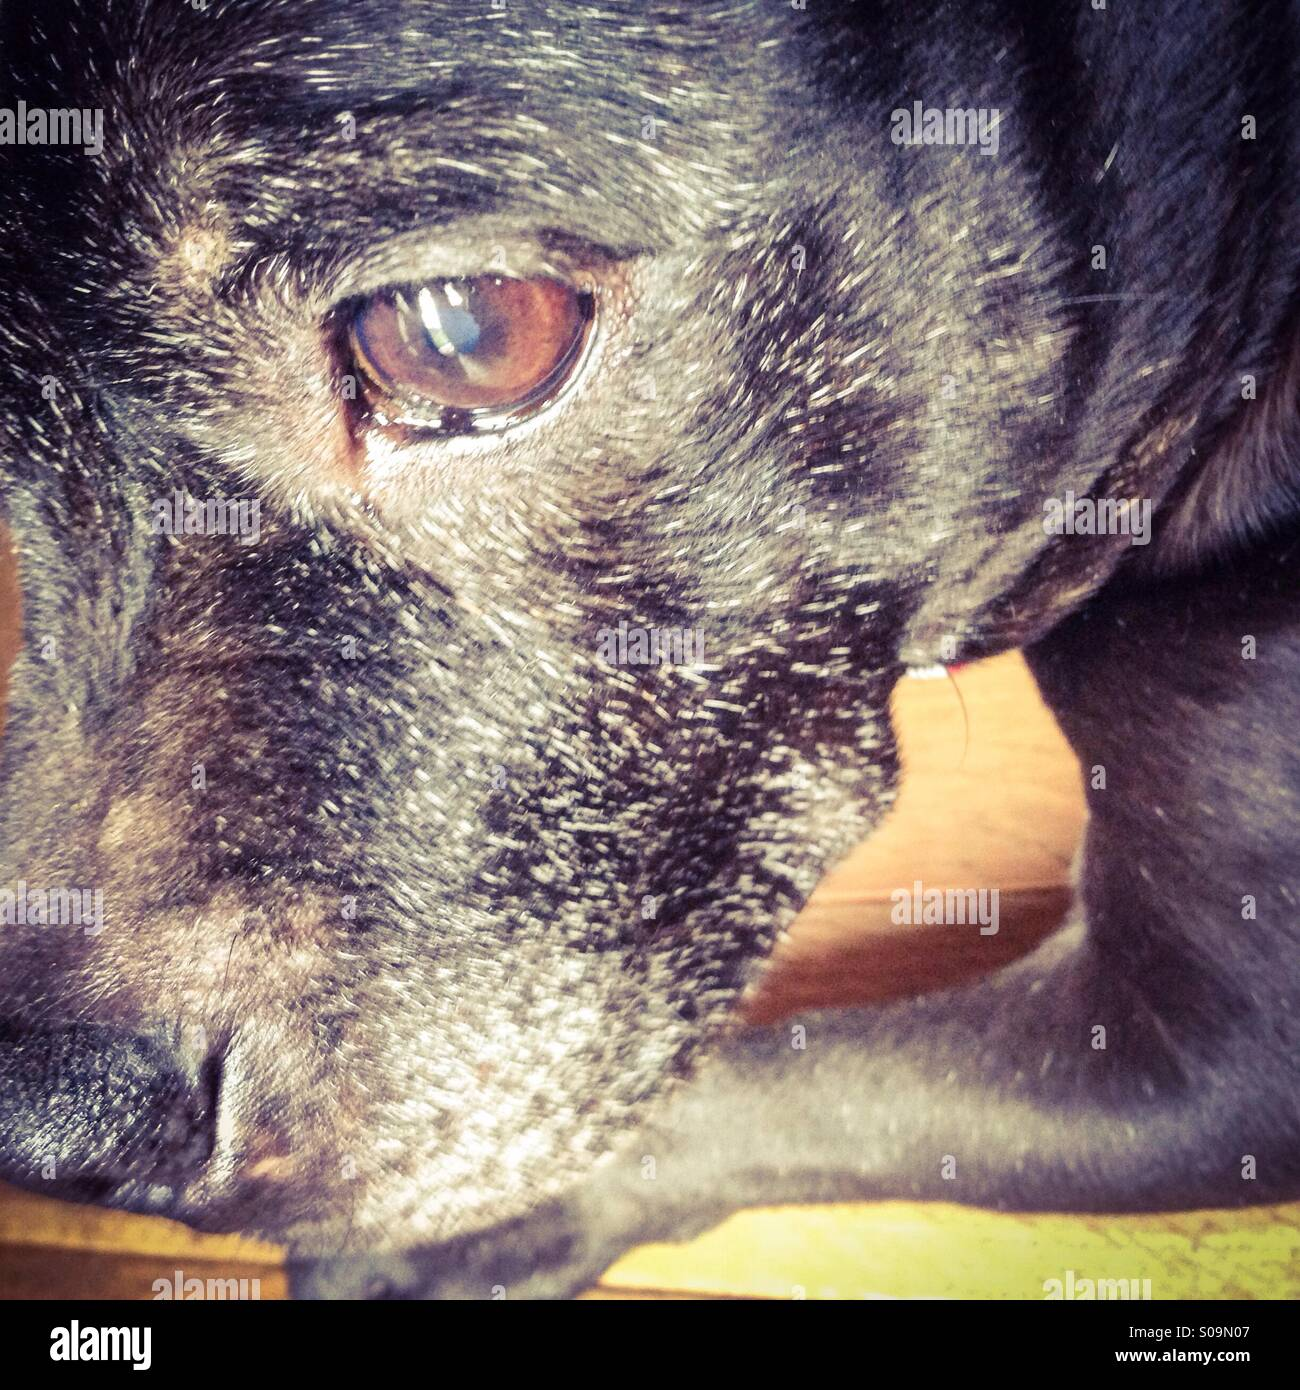 Eye of a Staffordshire Bull Terrier - Stock Image